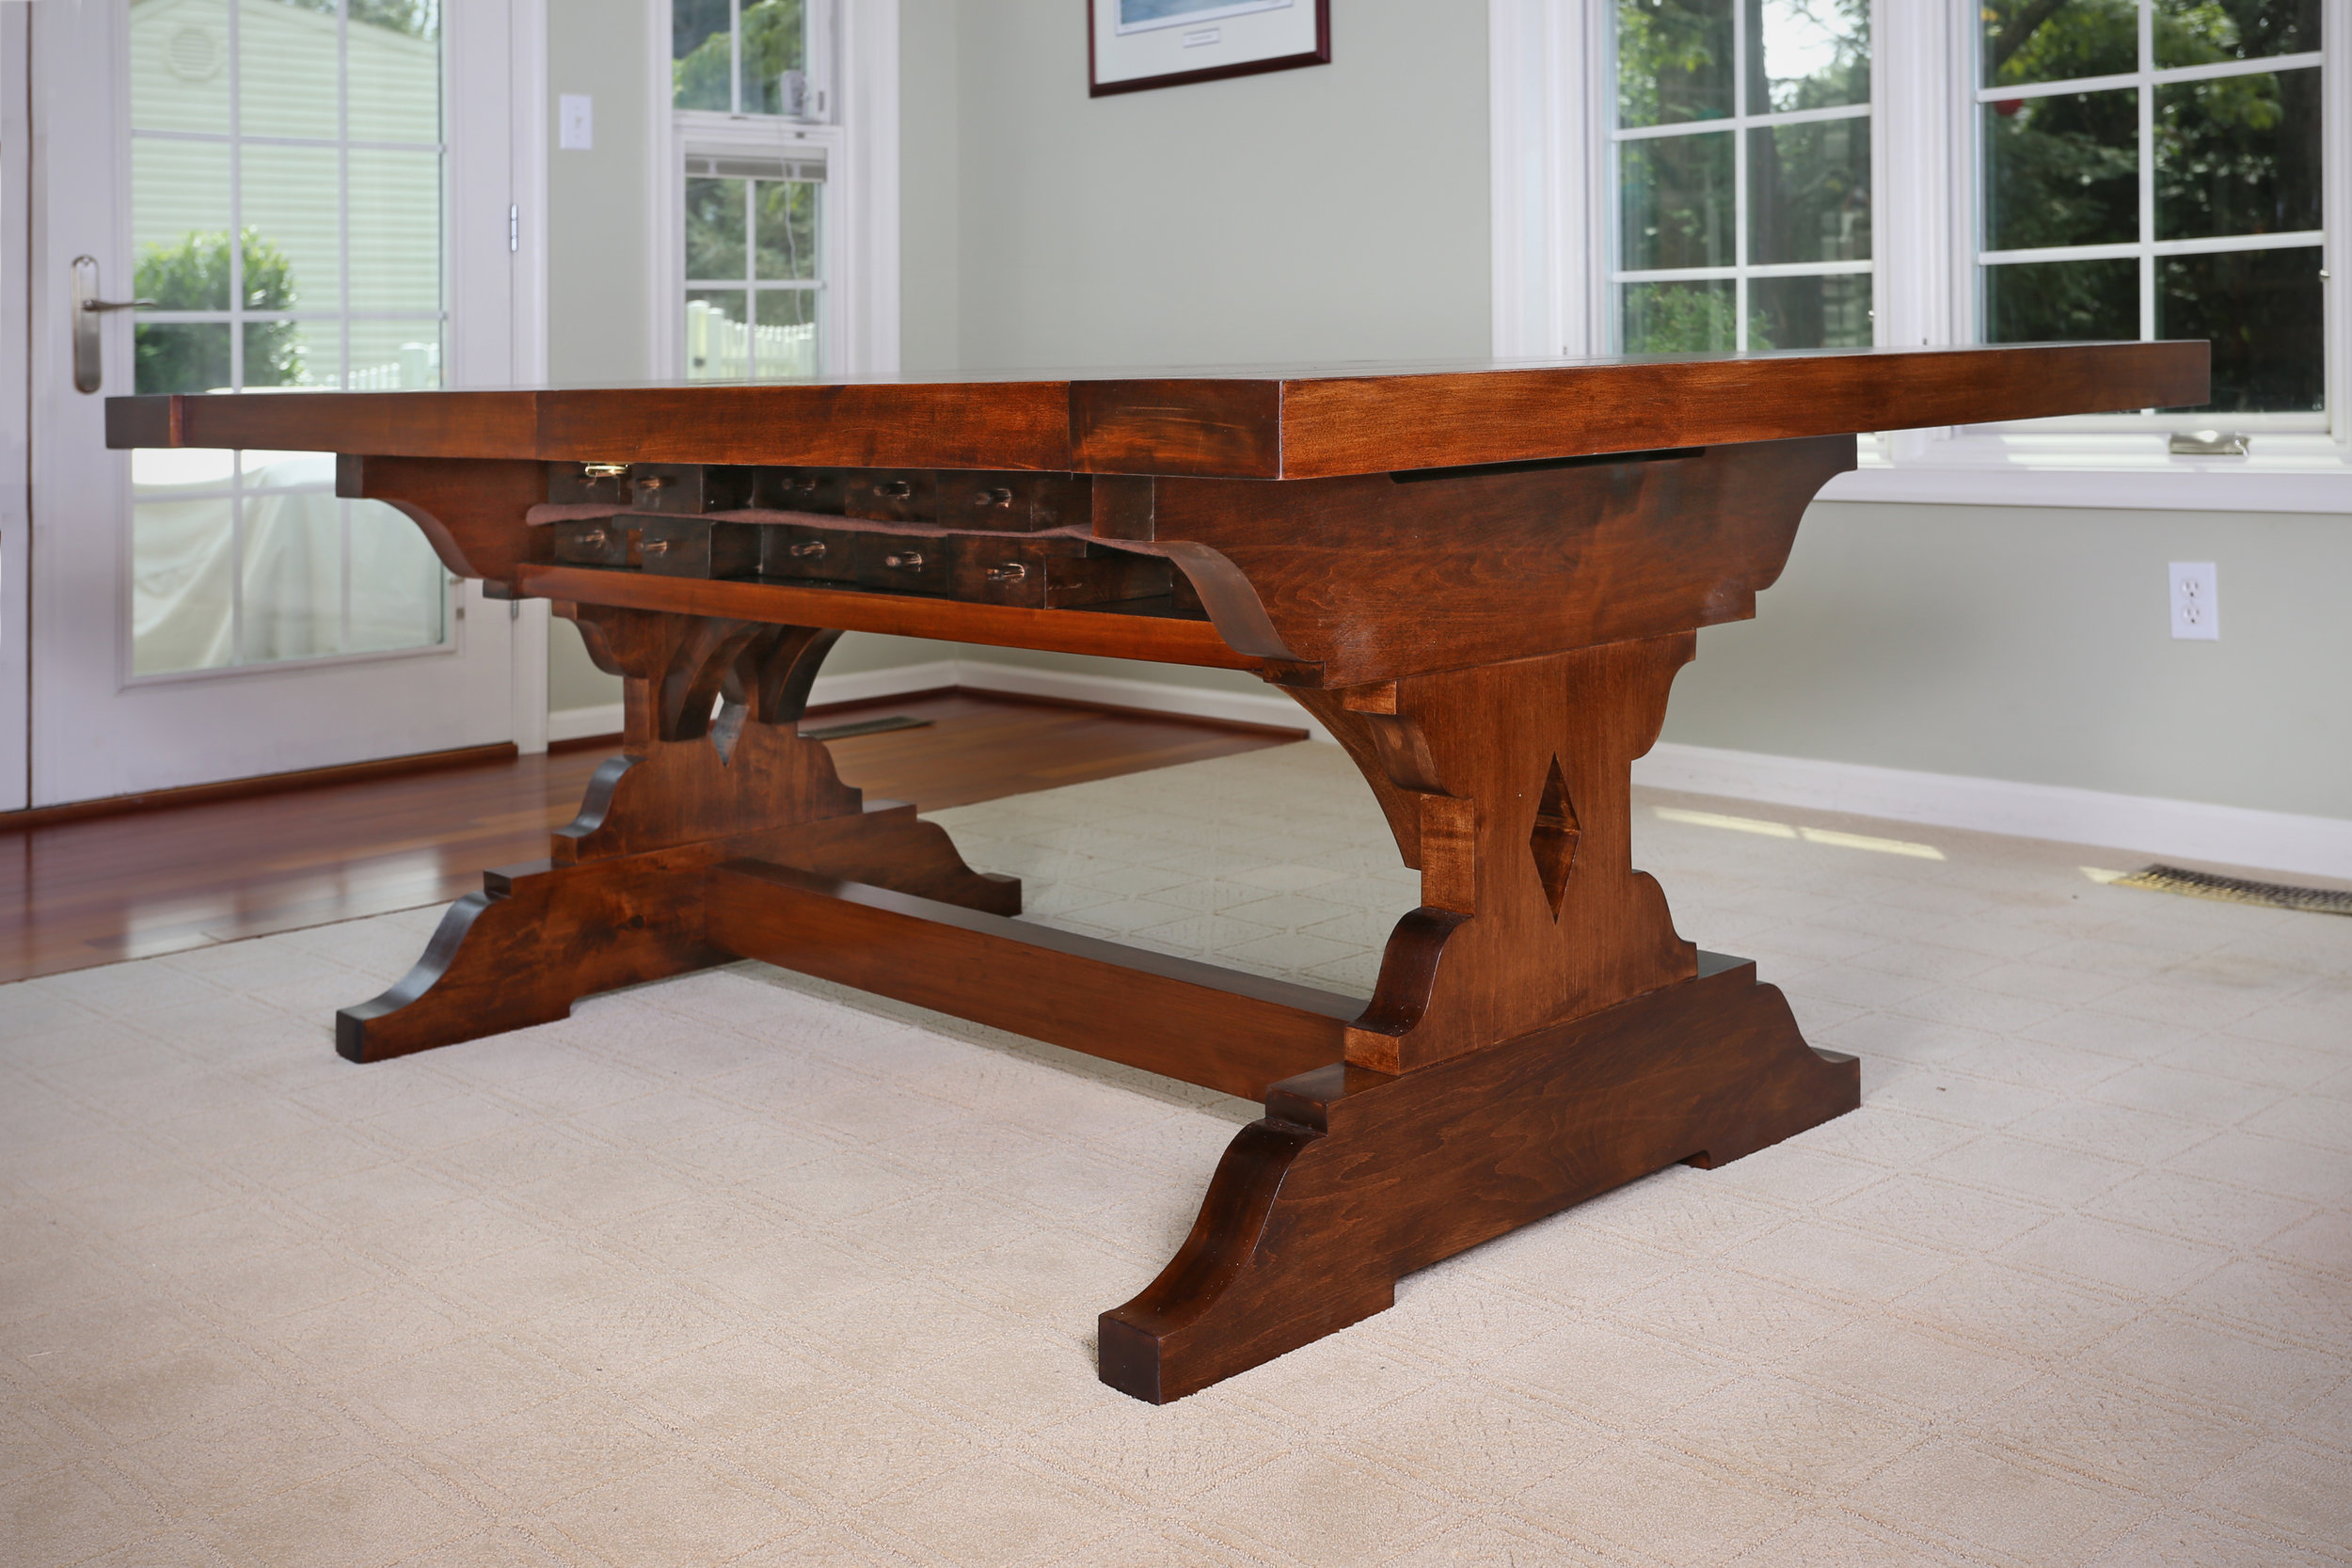 The large stretcher that runs between the bottom sections of the table legs adds additional rigidity to the overall piece.